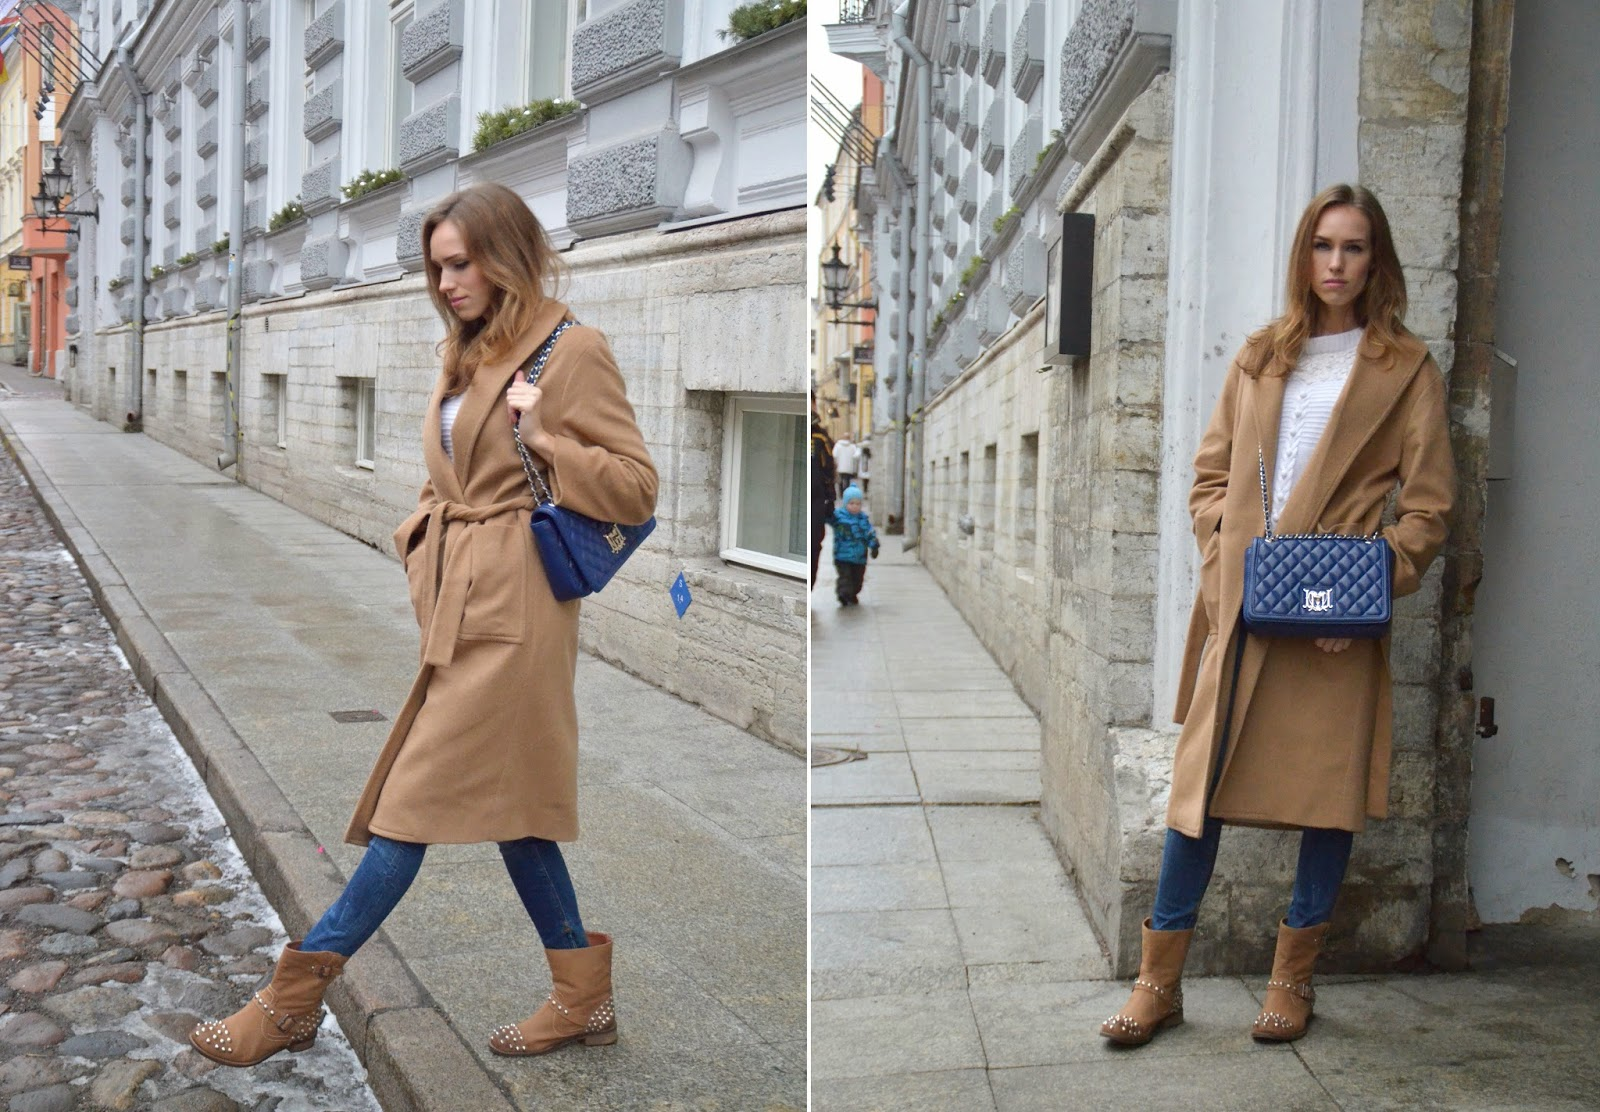 camel-coat-winter-outfit-old-town-tallinn